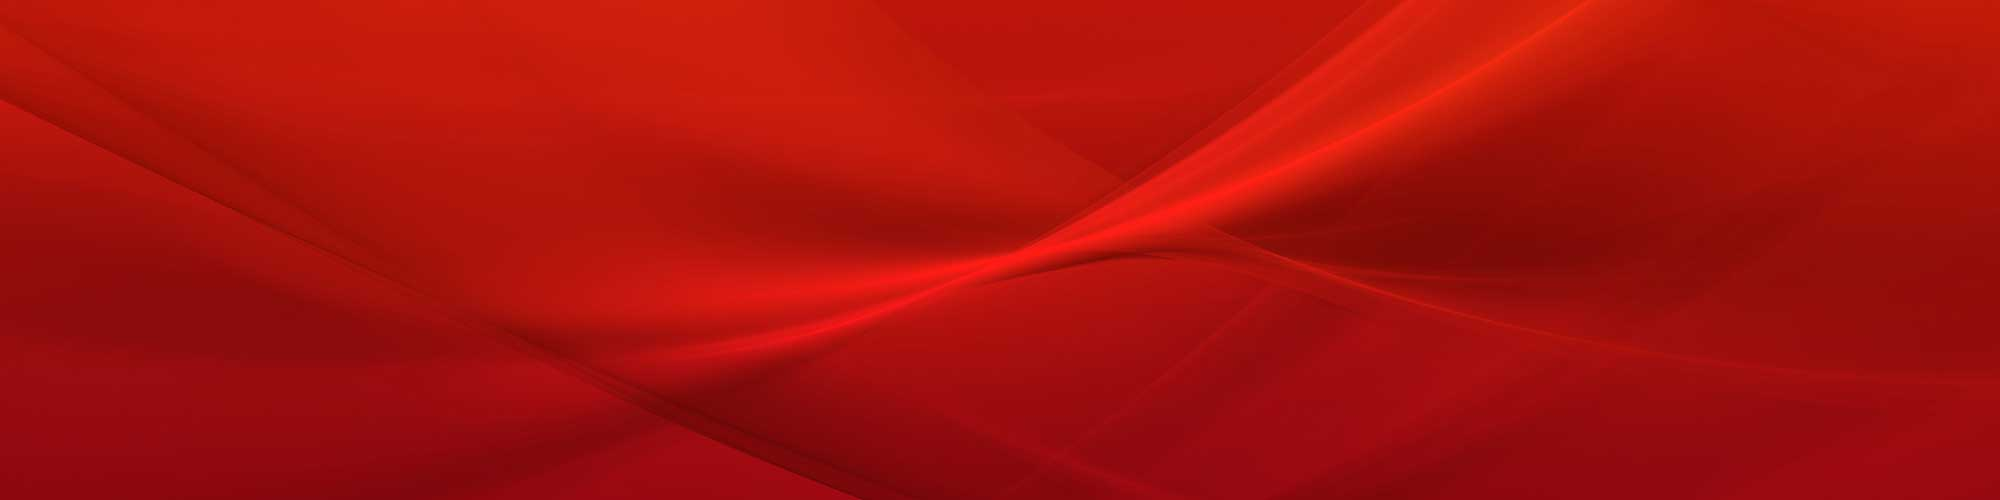 background-red